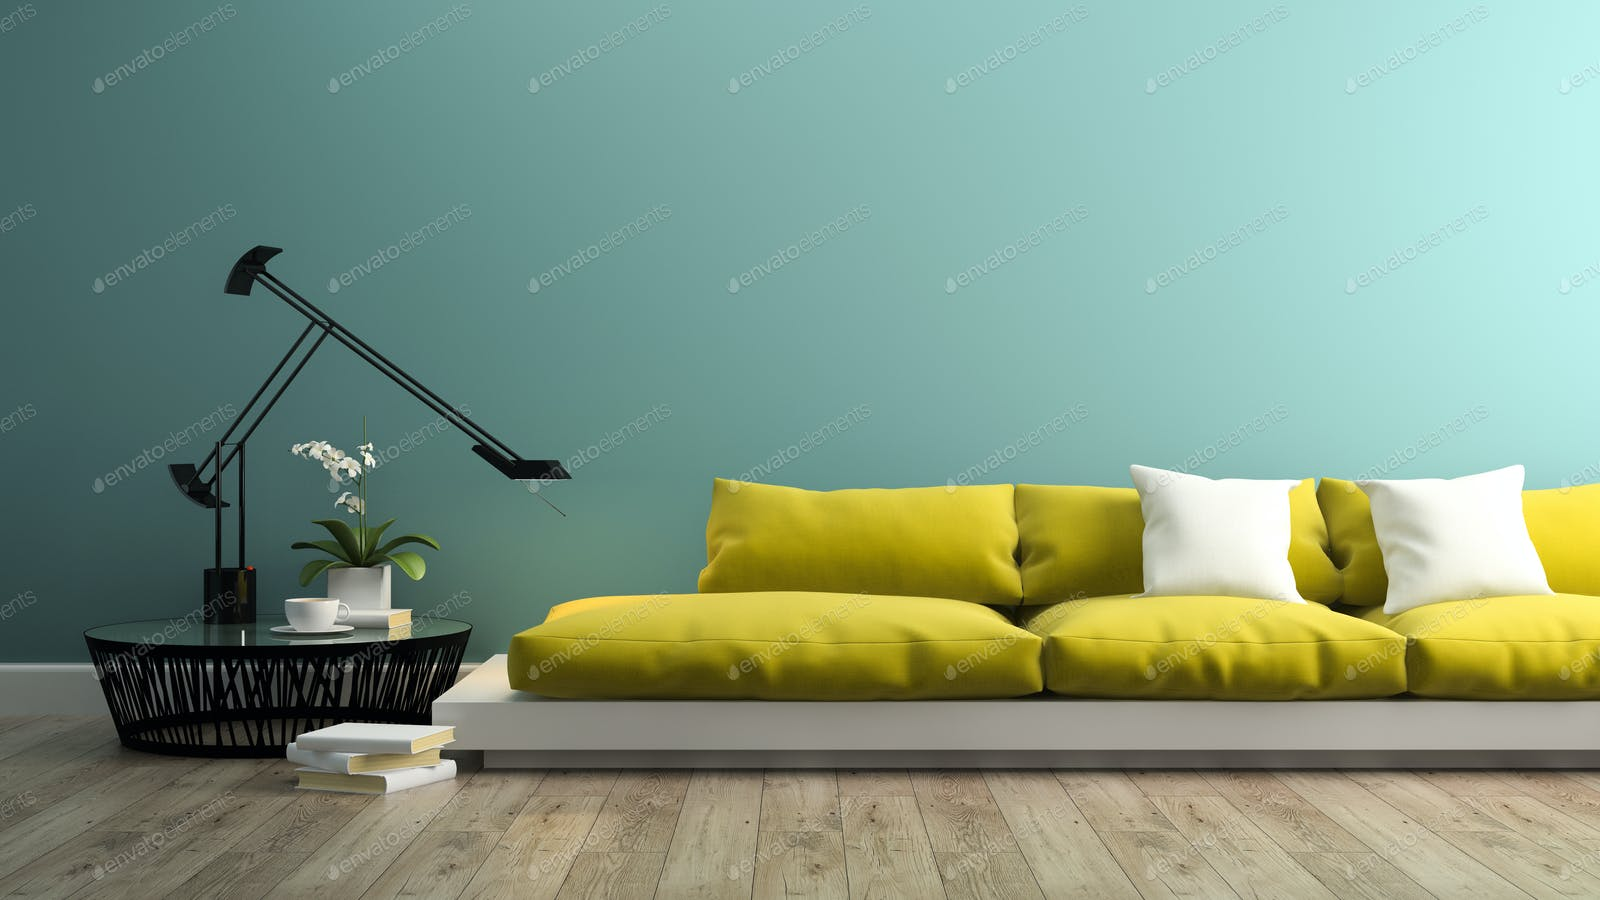 Part of interior with modern yellow sofa 3d rendering photo by hemul75 on  Envato Elements